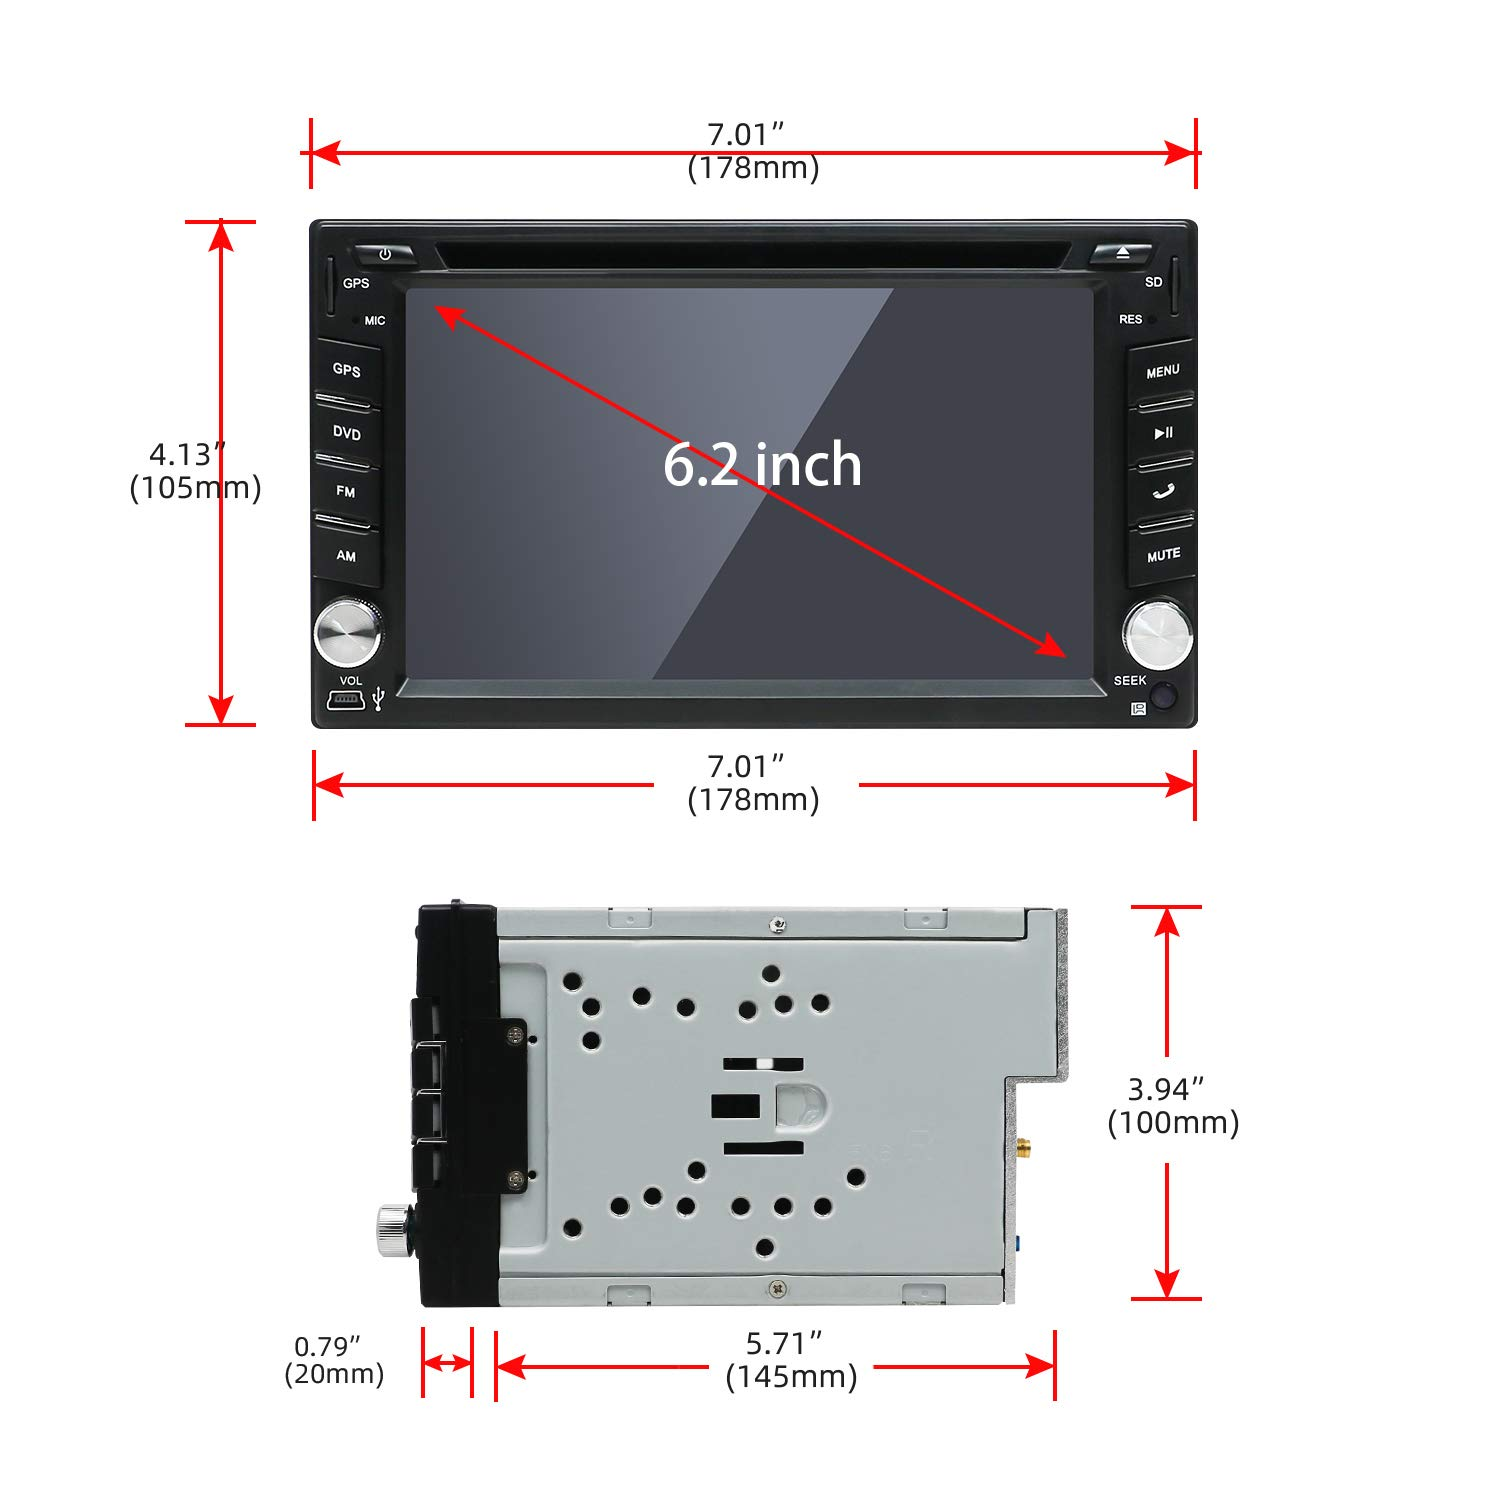 BOSION Navigation Win CE product 6.2-inch Double DIN in Dash Car Dvd on car stereo diagram, car alternator diagram, car amplifier diagram, car brakes diagram, car radio clock, car fuse box diagram, car relay diagram, car radio speaker, car starter diagram, car battery diagram, car door diagram, car radio installation, car horn diagram, car radio plugs diagram, car radio circuit, car engine diagram, car electrical diagram, car radio assembly, car power window diagram,